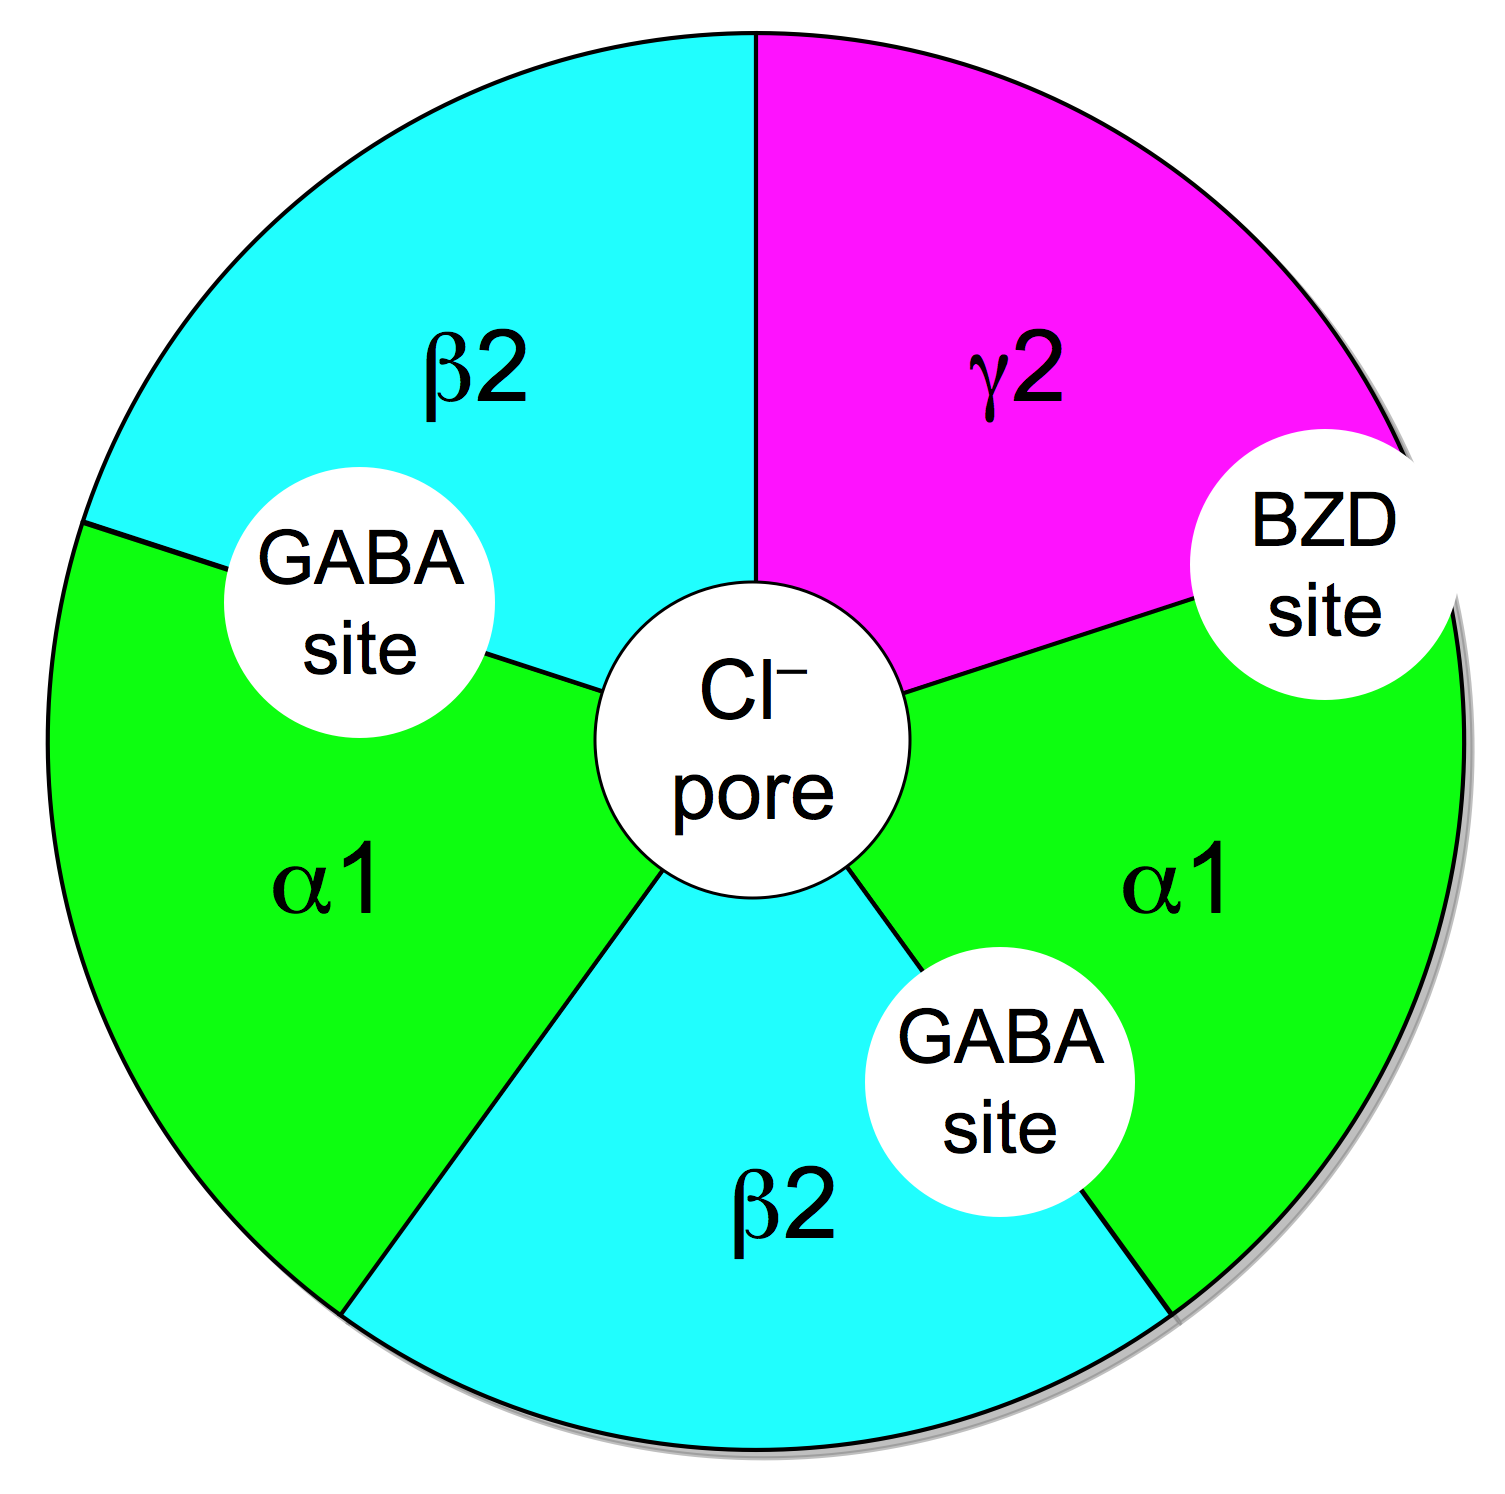 http://upload.wikimedia.org/wikipedia/commons/4/45/GABAA-receptor-protein-example.png